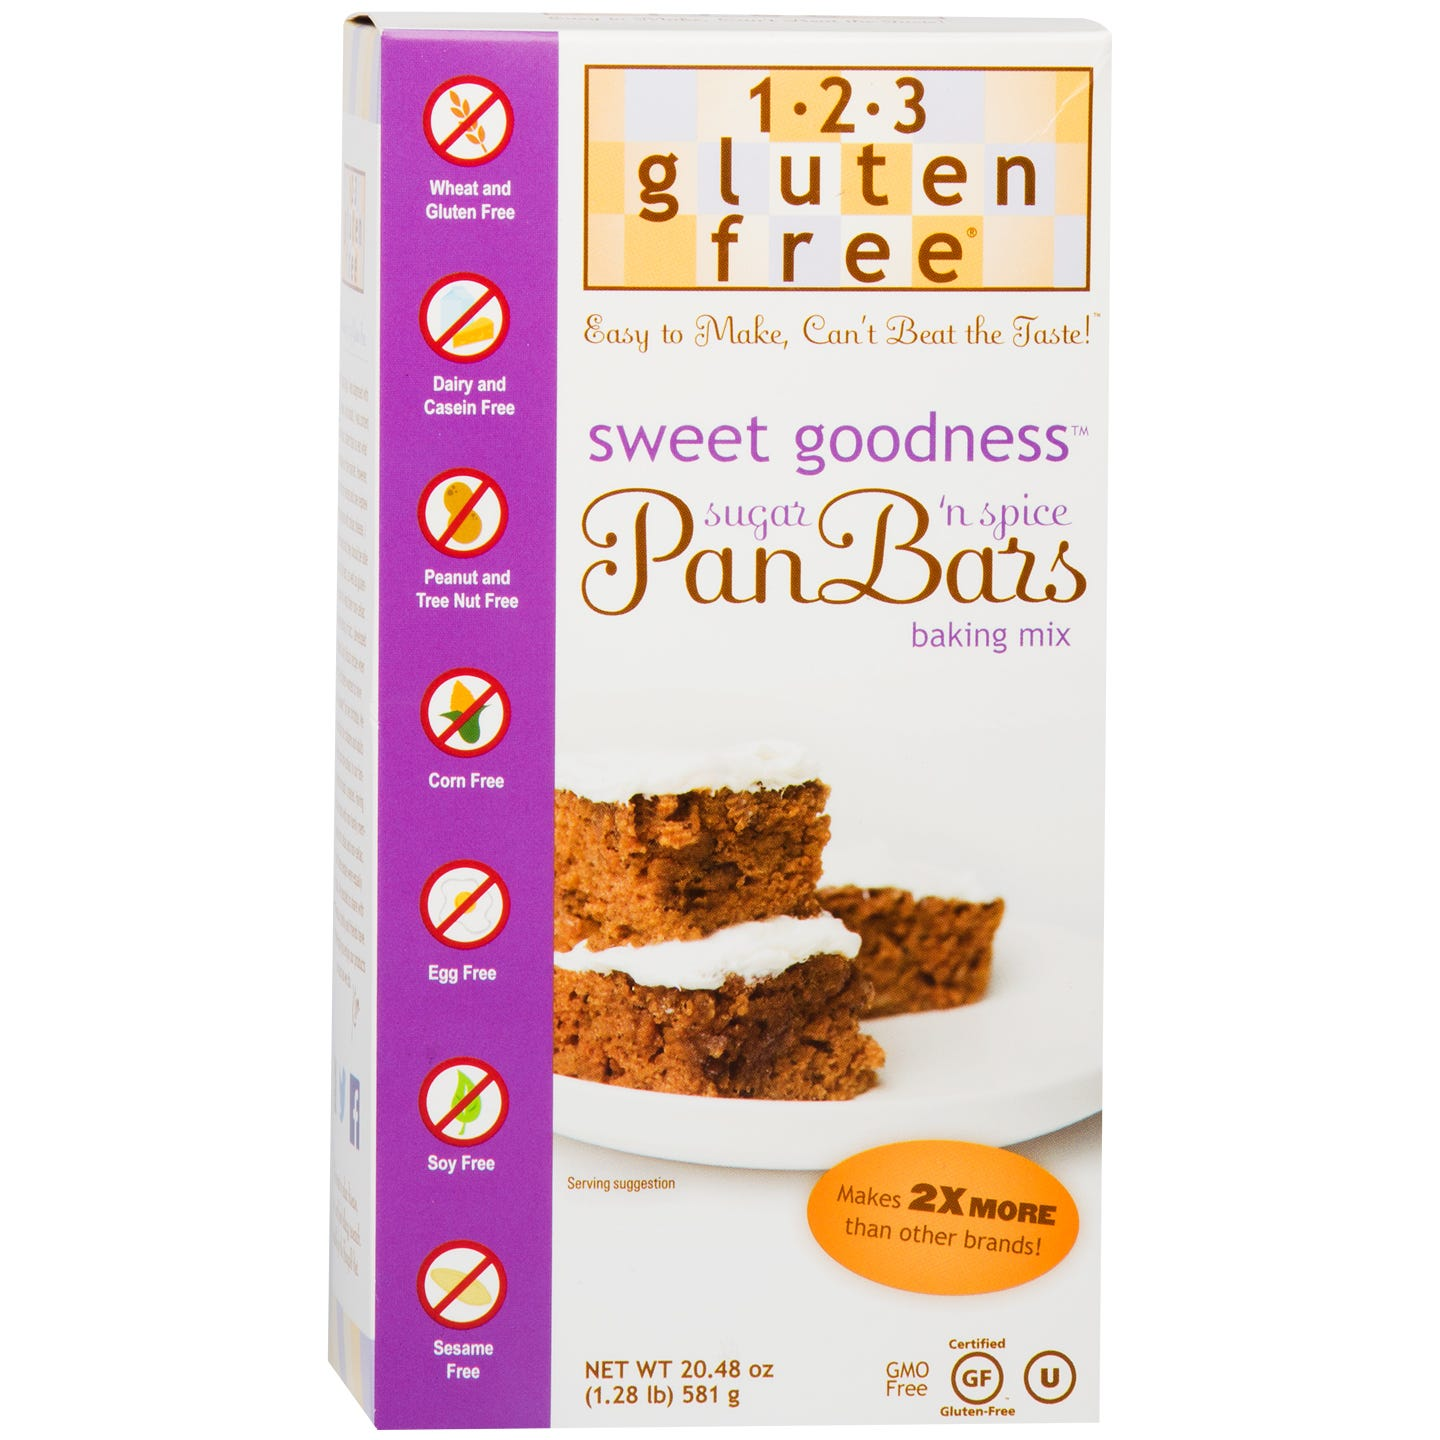 Gluten Free Pan Bars Mix, Sweet Goodness 20.48 oz - 123 Gluten Free - Rapid Diet Weight Loss Products Shop